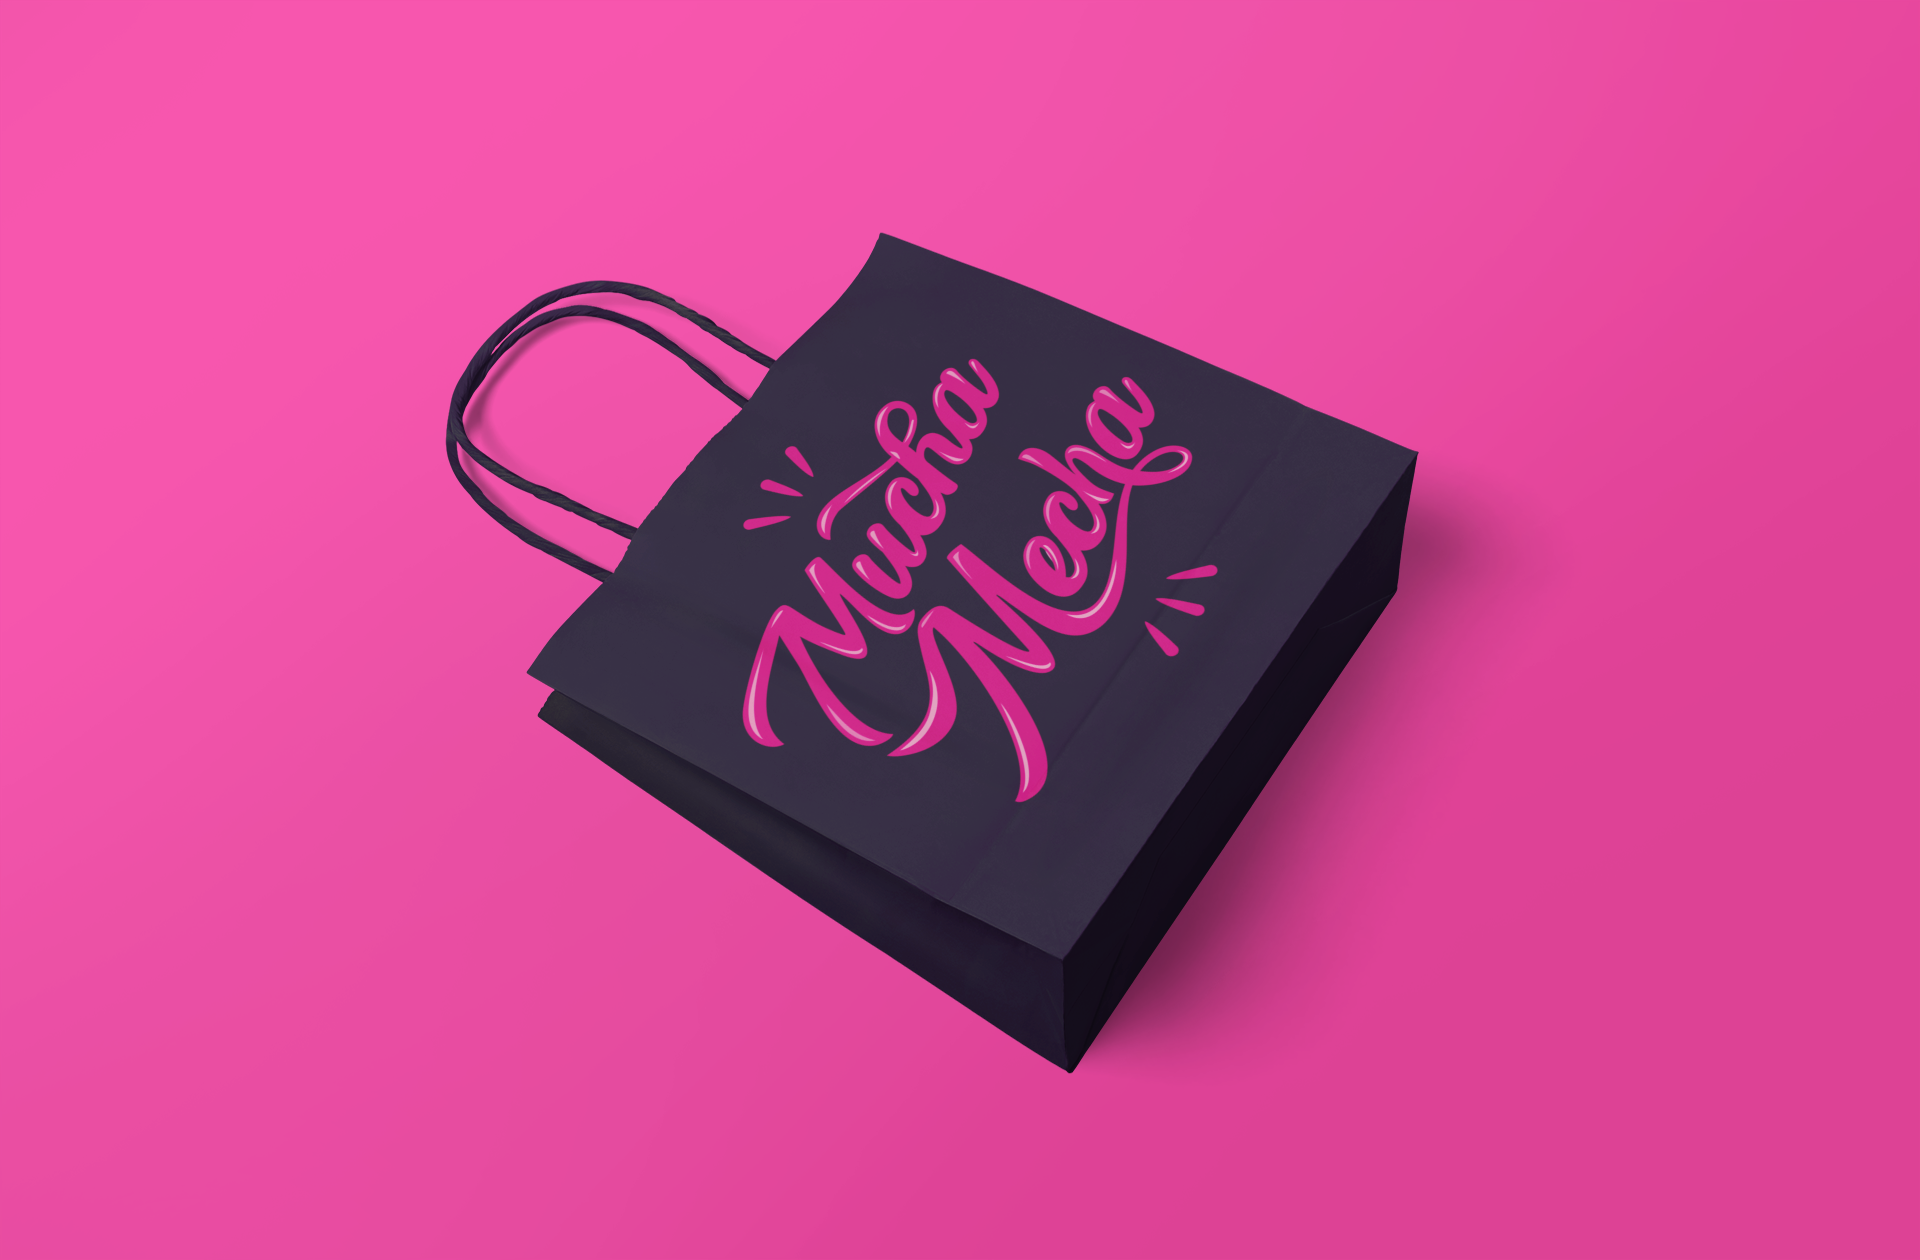 mockup-of-a-gift-bag-lying-on-a-solid-color-surface-649-el